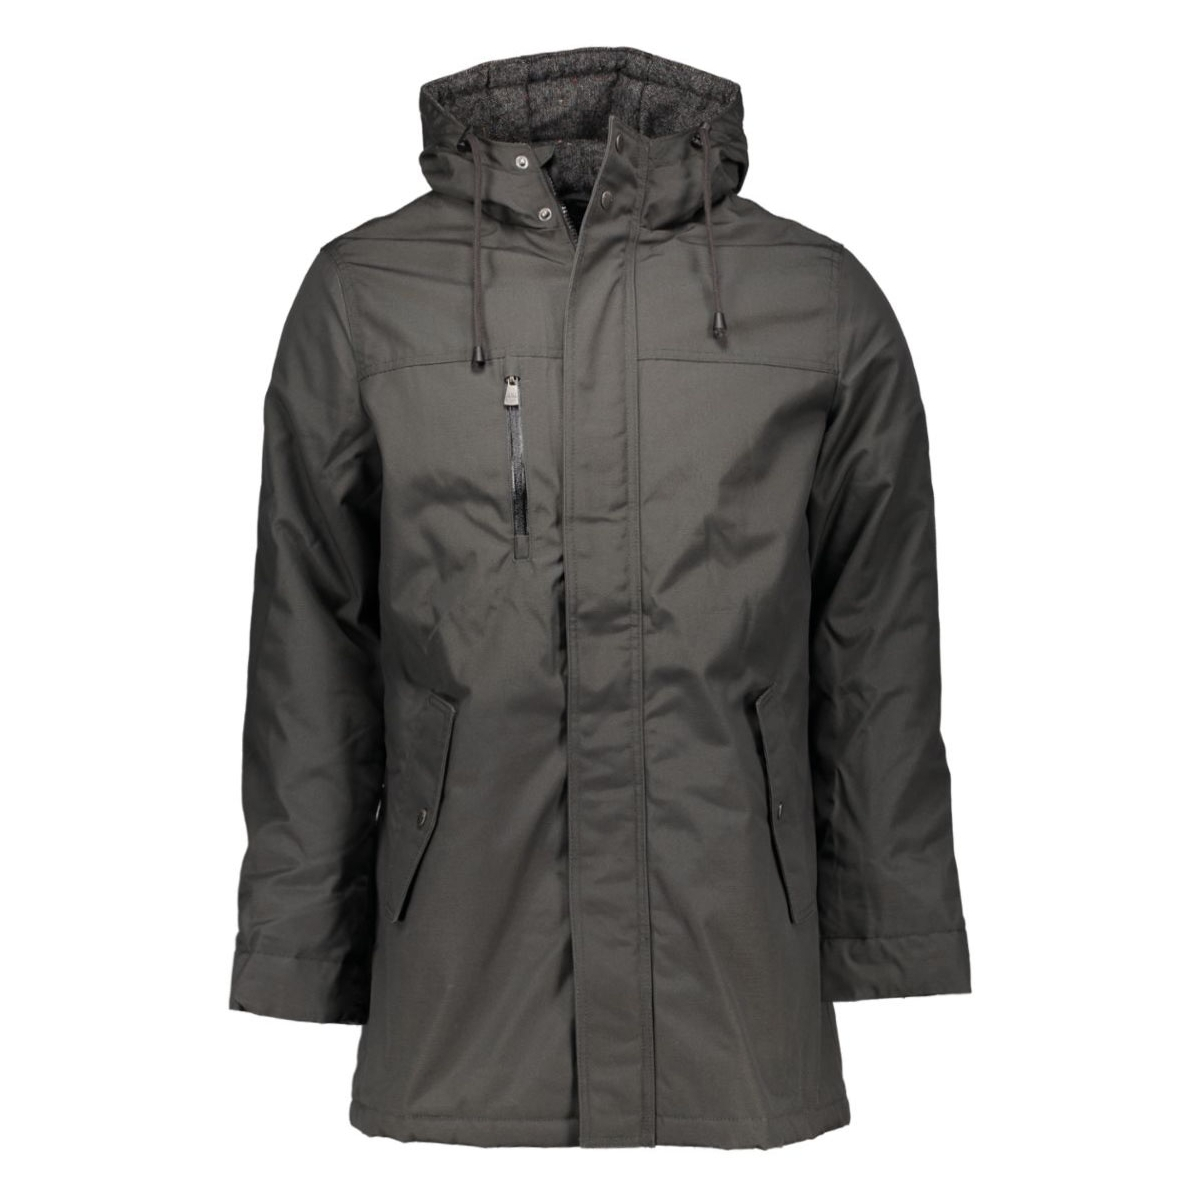 onssheldon jacket noos 22001584 only & sons jas raven